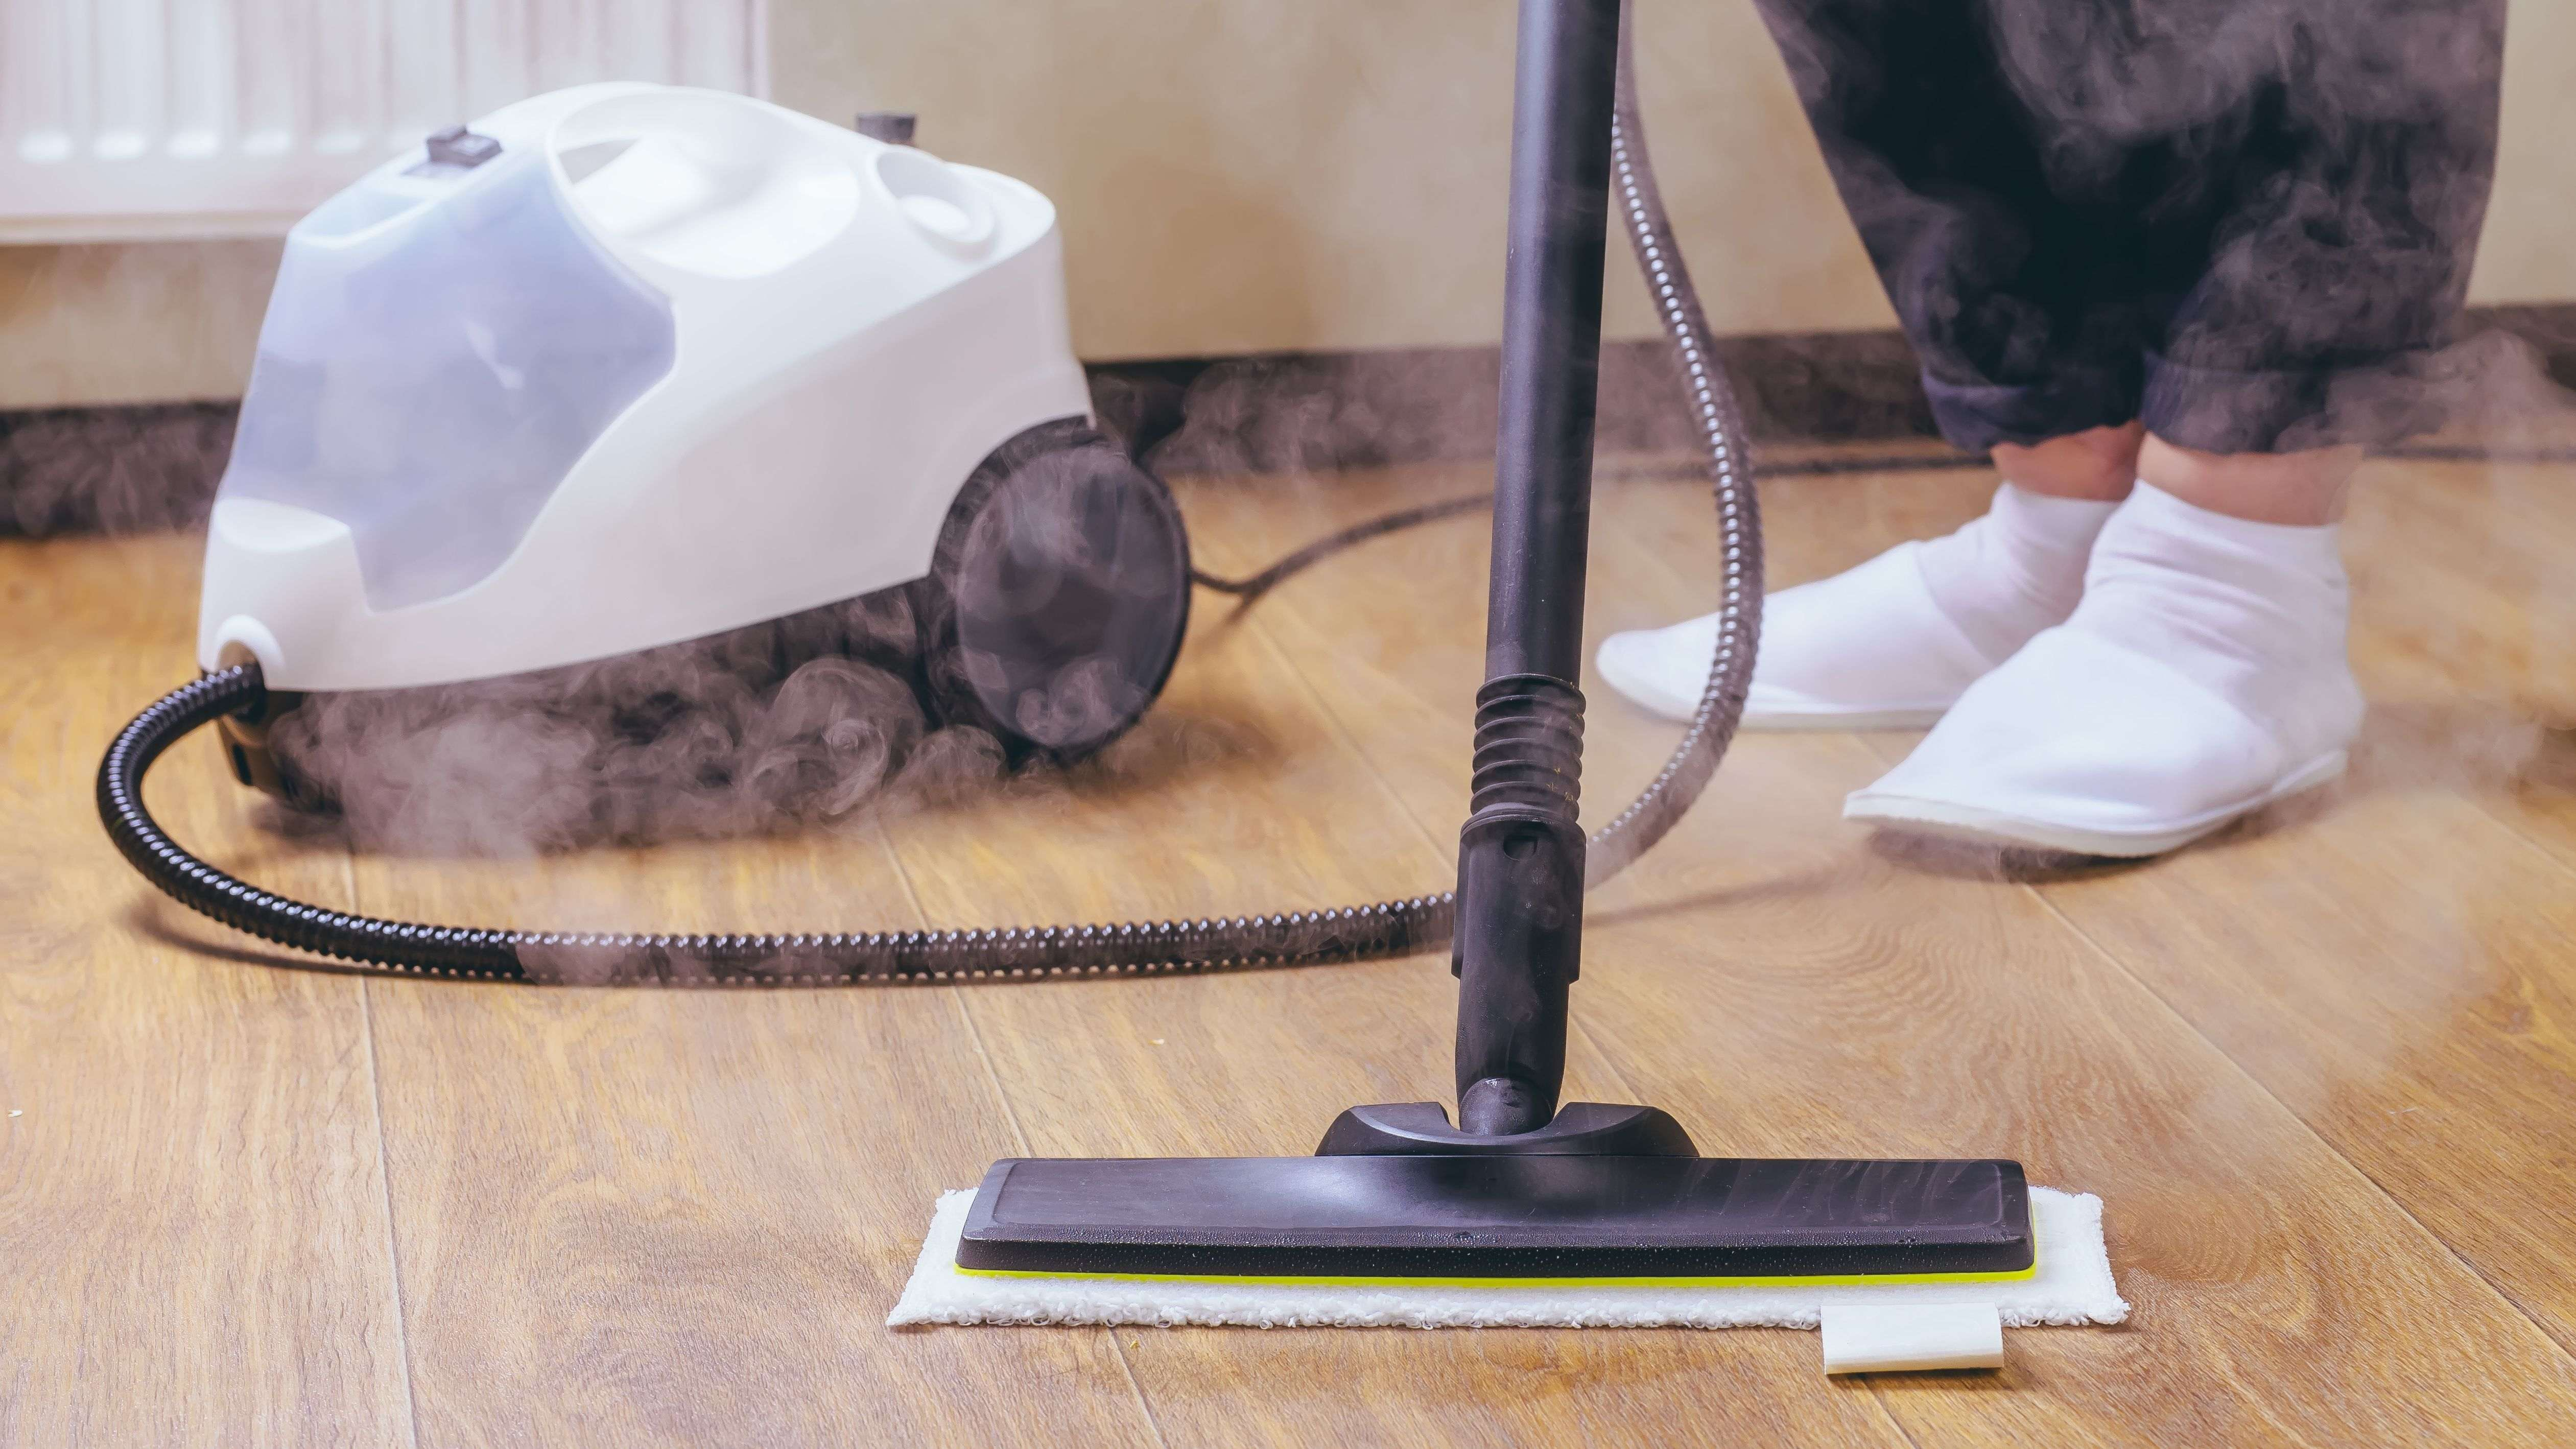 Steam cleaner buying guide